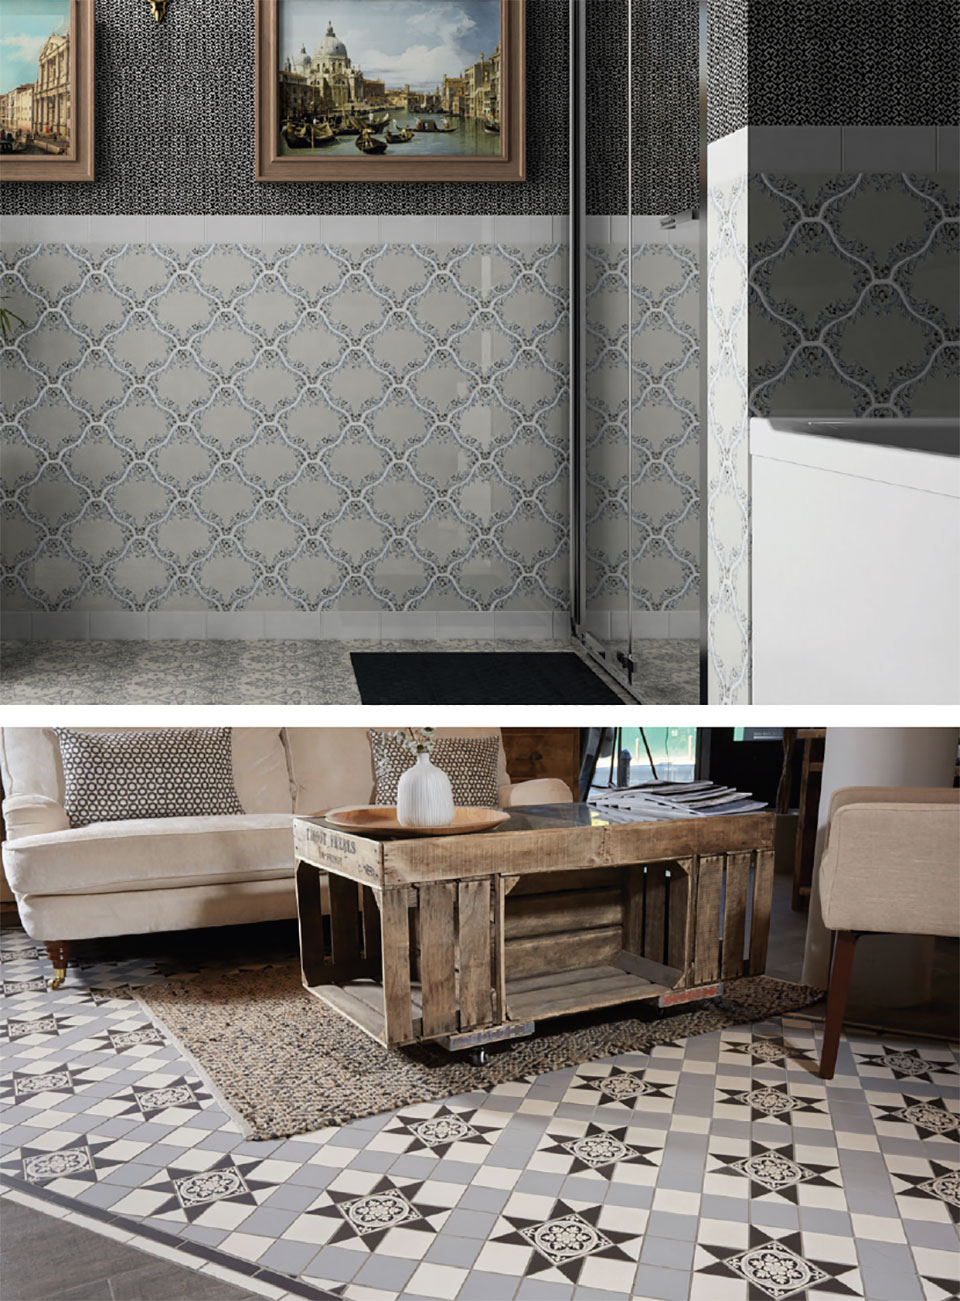 Classing It Up With Tile- Park City Floor